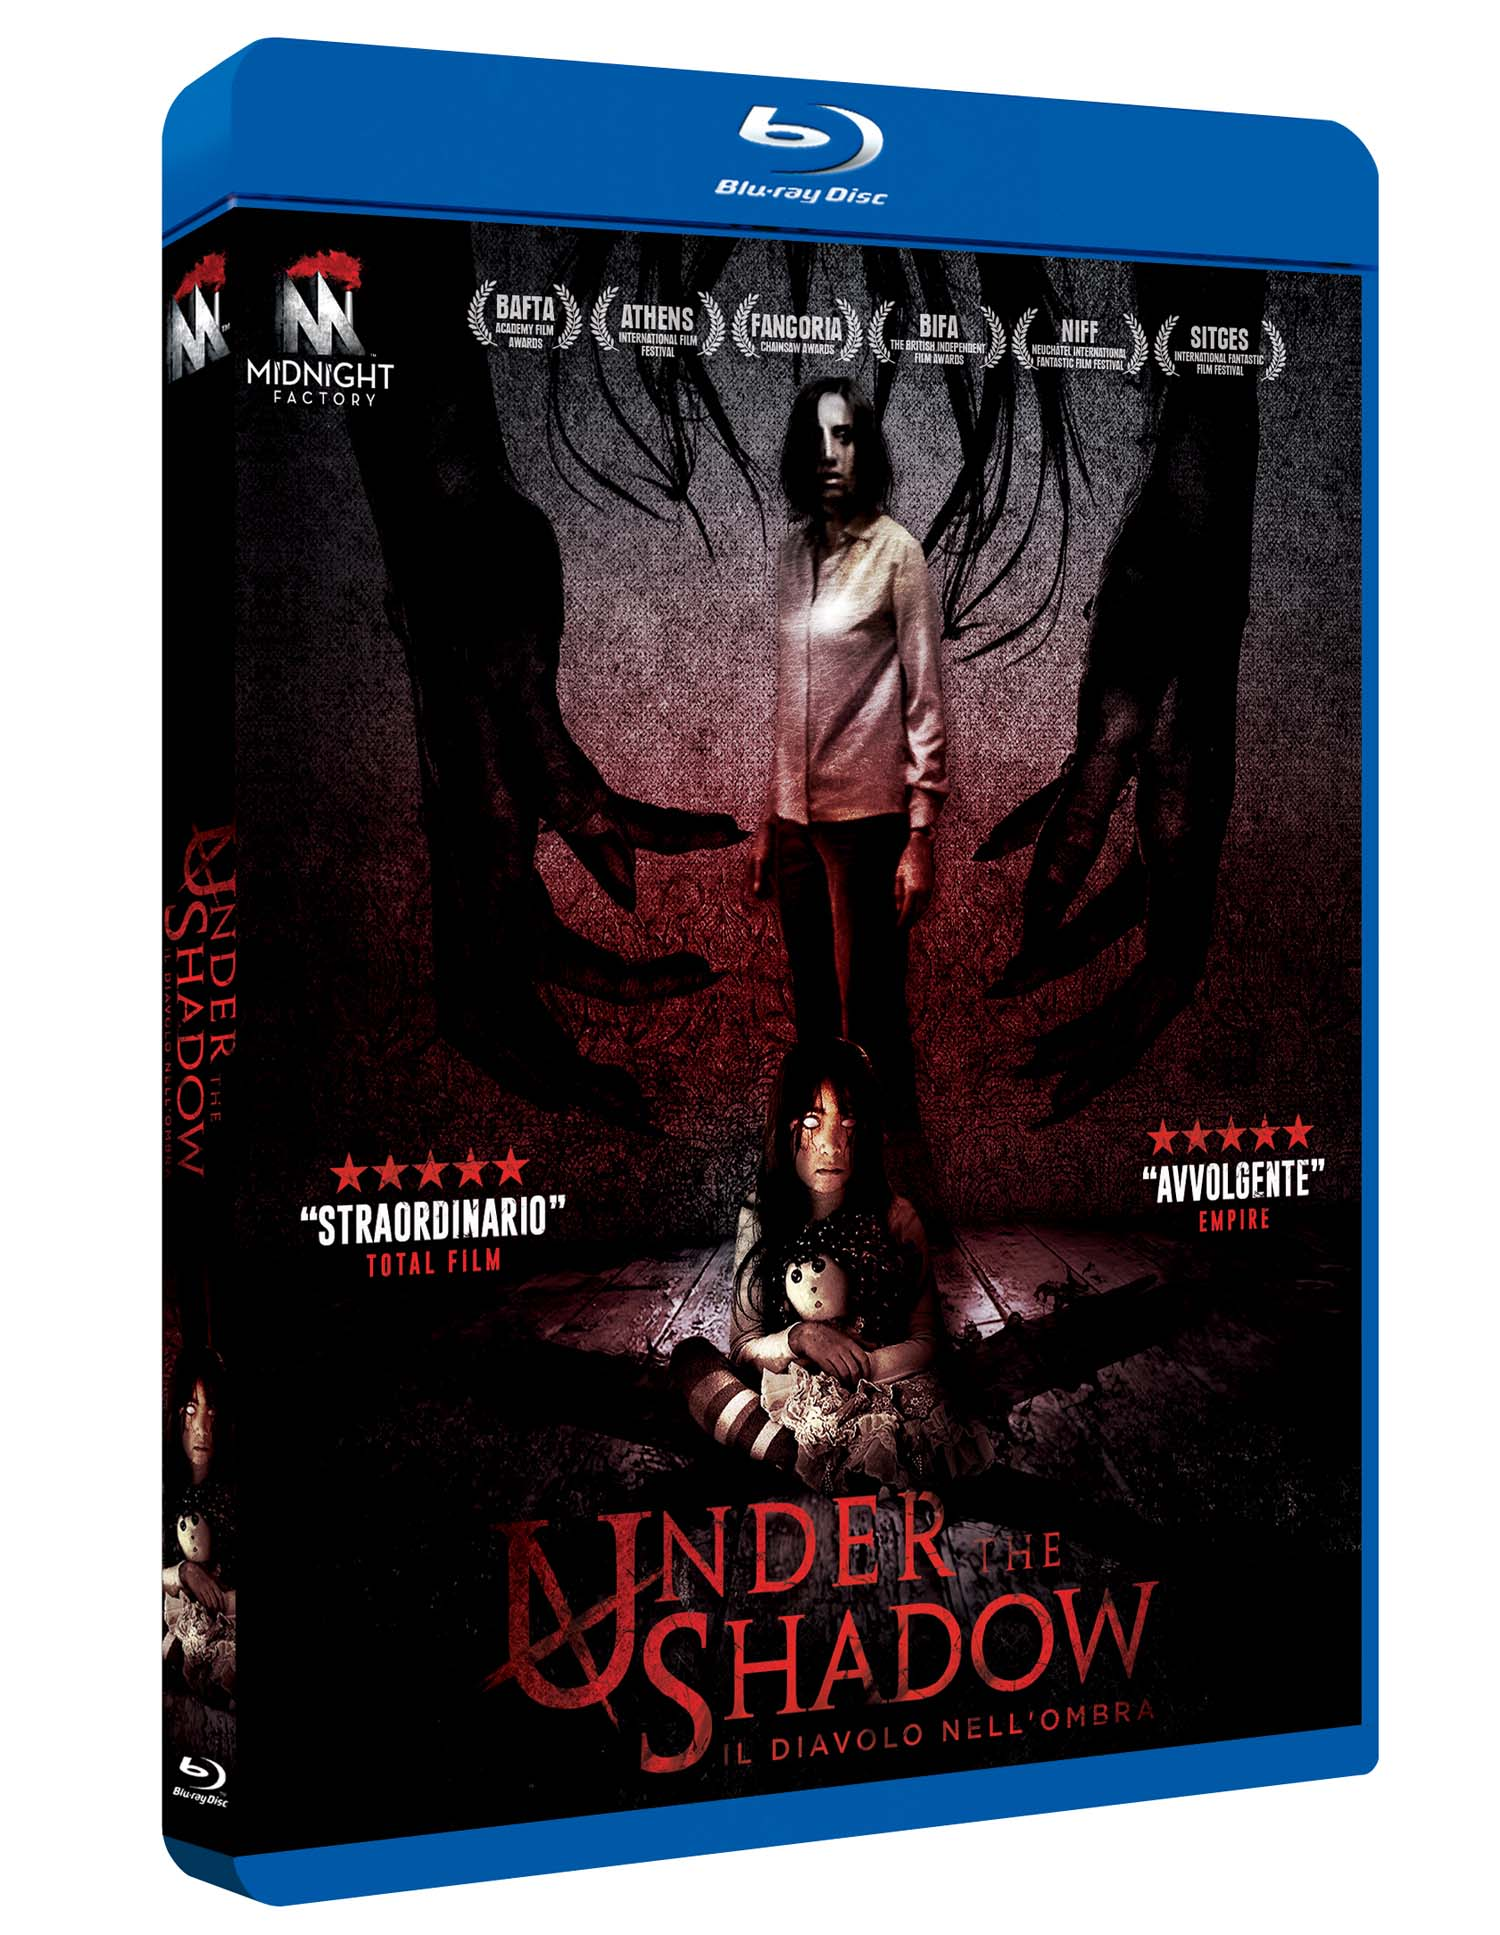 UNDER THE SHADOW - IL DIAVOLO NELL'OMBRA